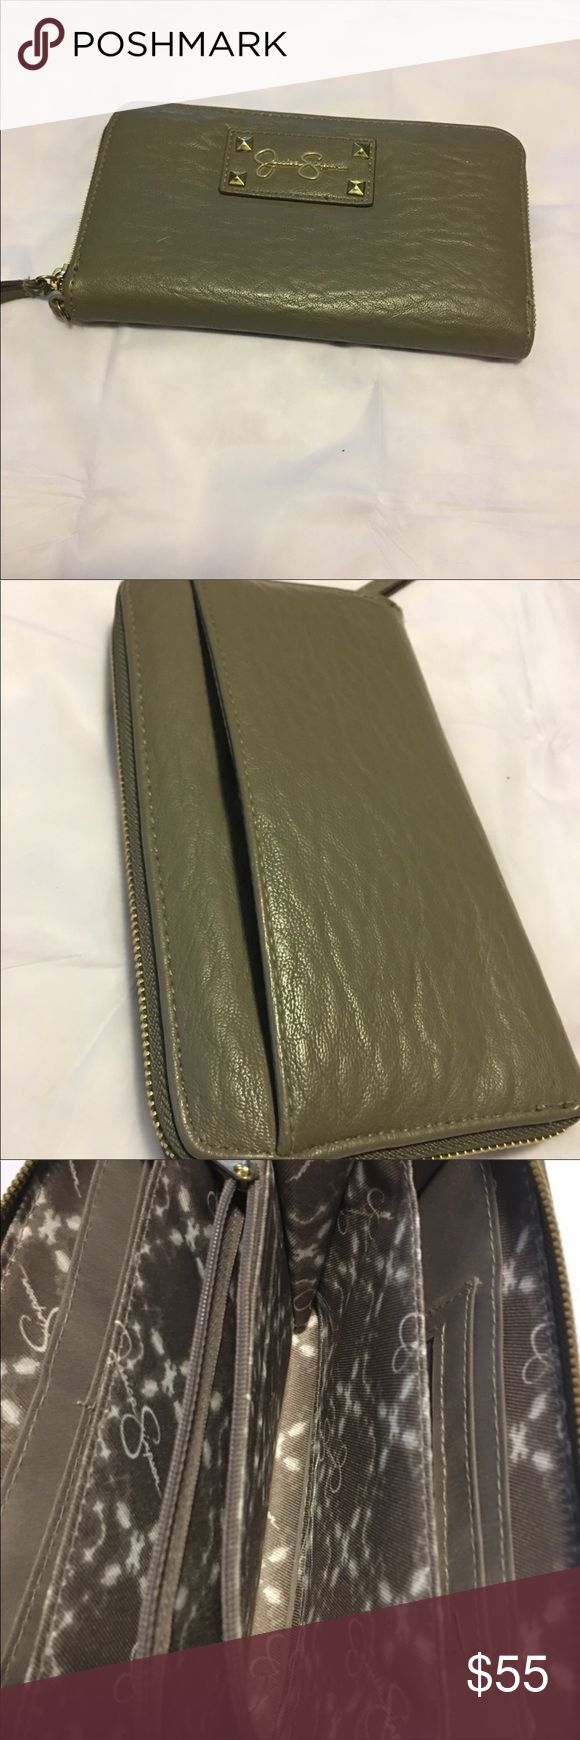 Jessica Simpson wallet In excellent condition Jessica Simpson wallet lots of pockets very beautiful wallet smoke free home. Color is like a olive green Jessica Simpson Bags Wallets